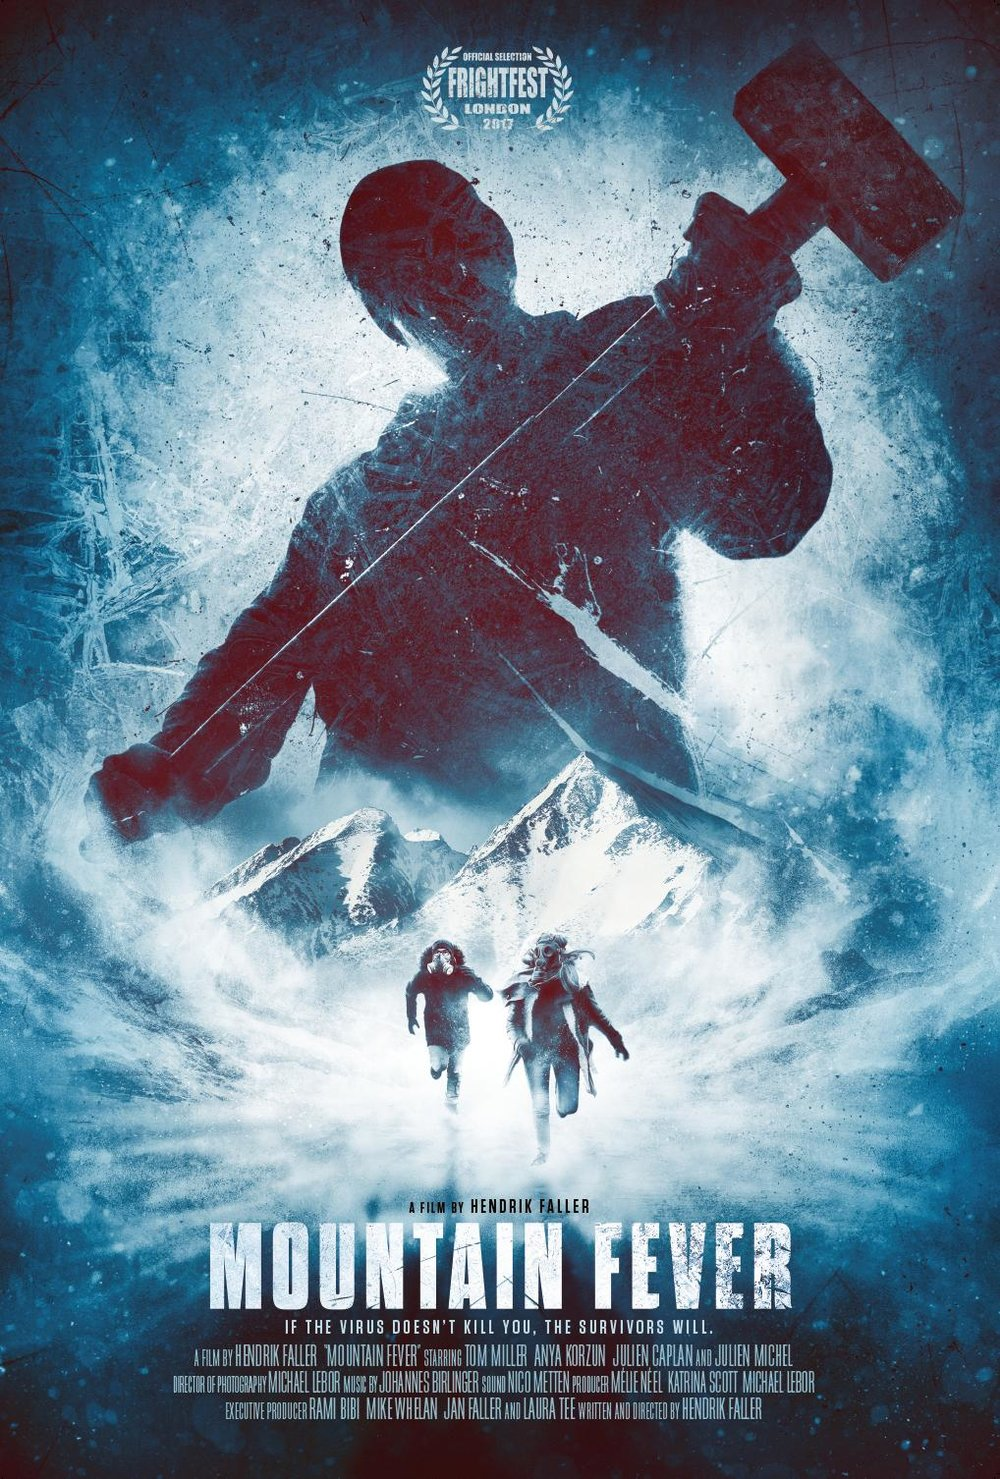 Mountain fever trailer - Official Selection for London Frightfest Film Festival.